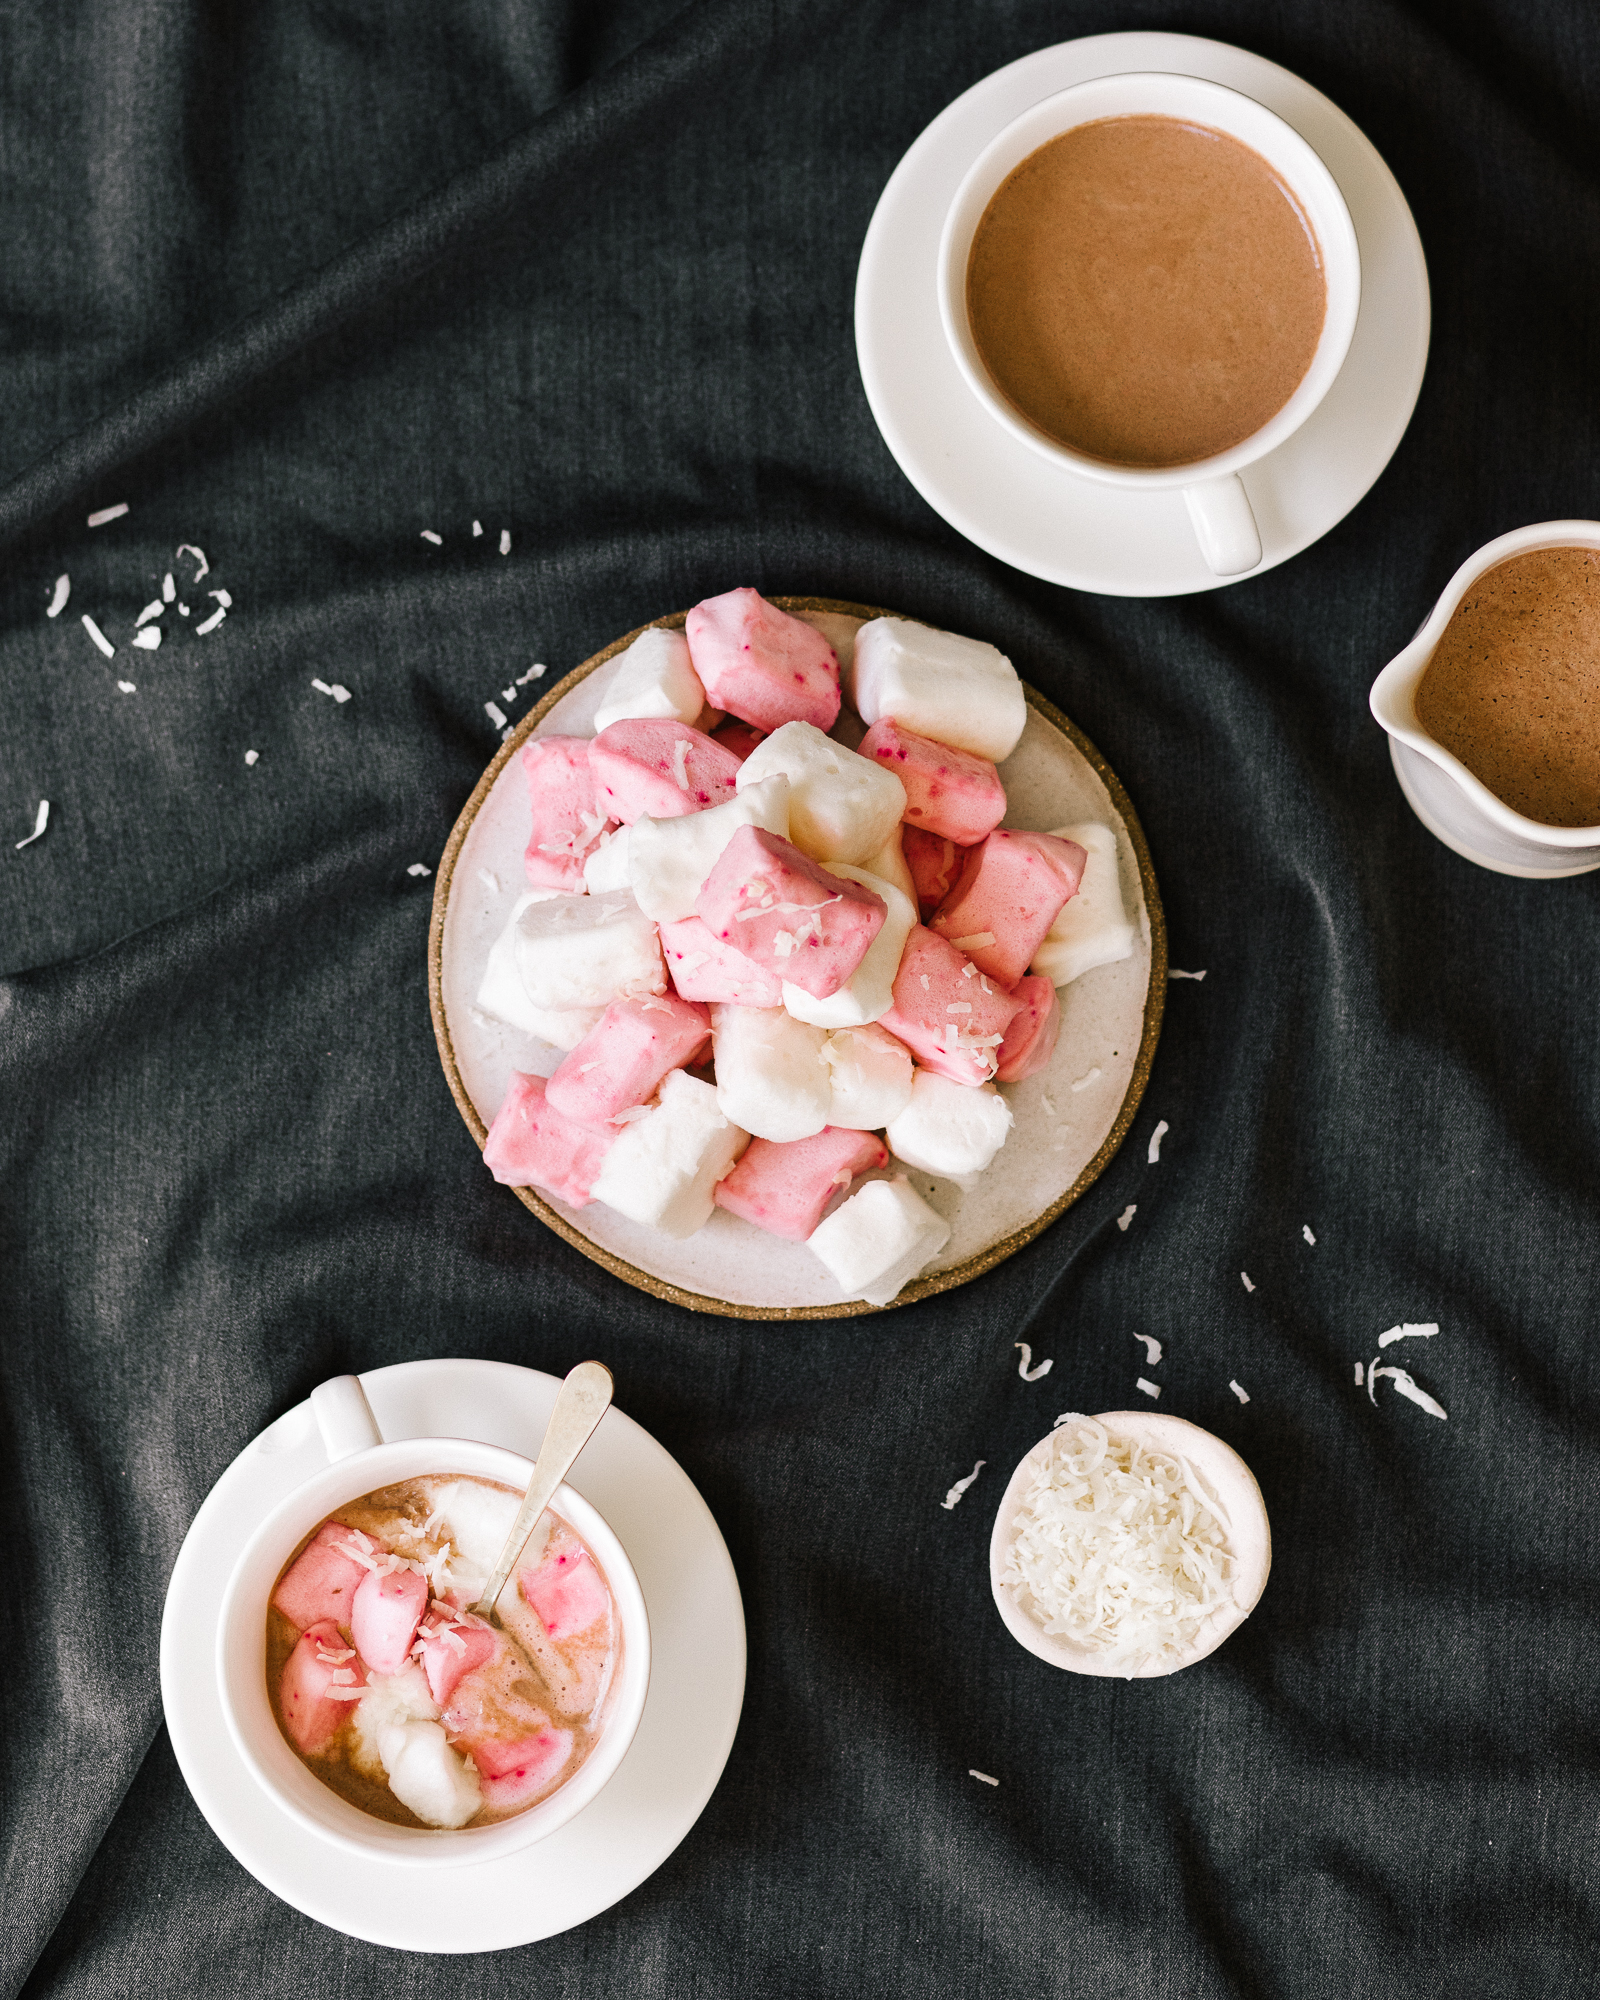 Marshmallows2_by_Jordan_Pie_Nutritionist_Real_Life_of_Pie-1.jpg